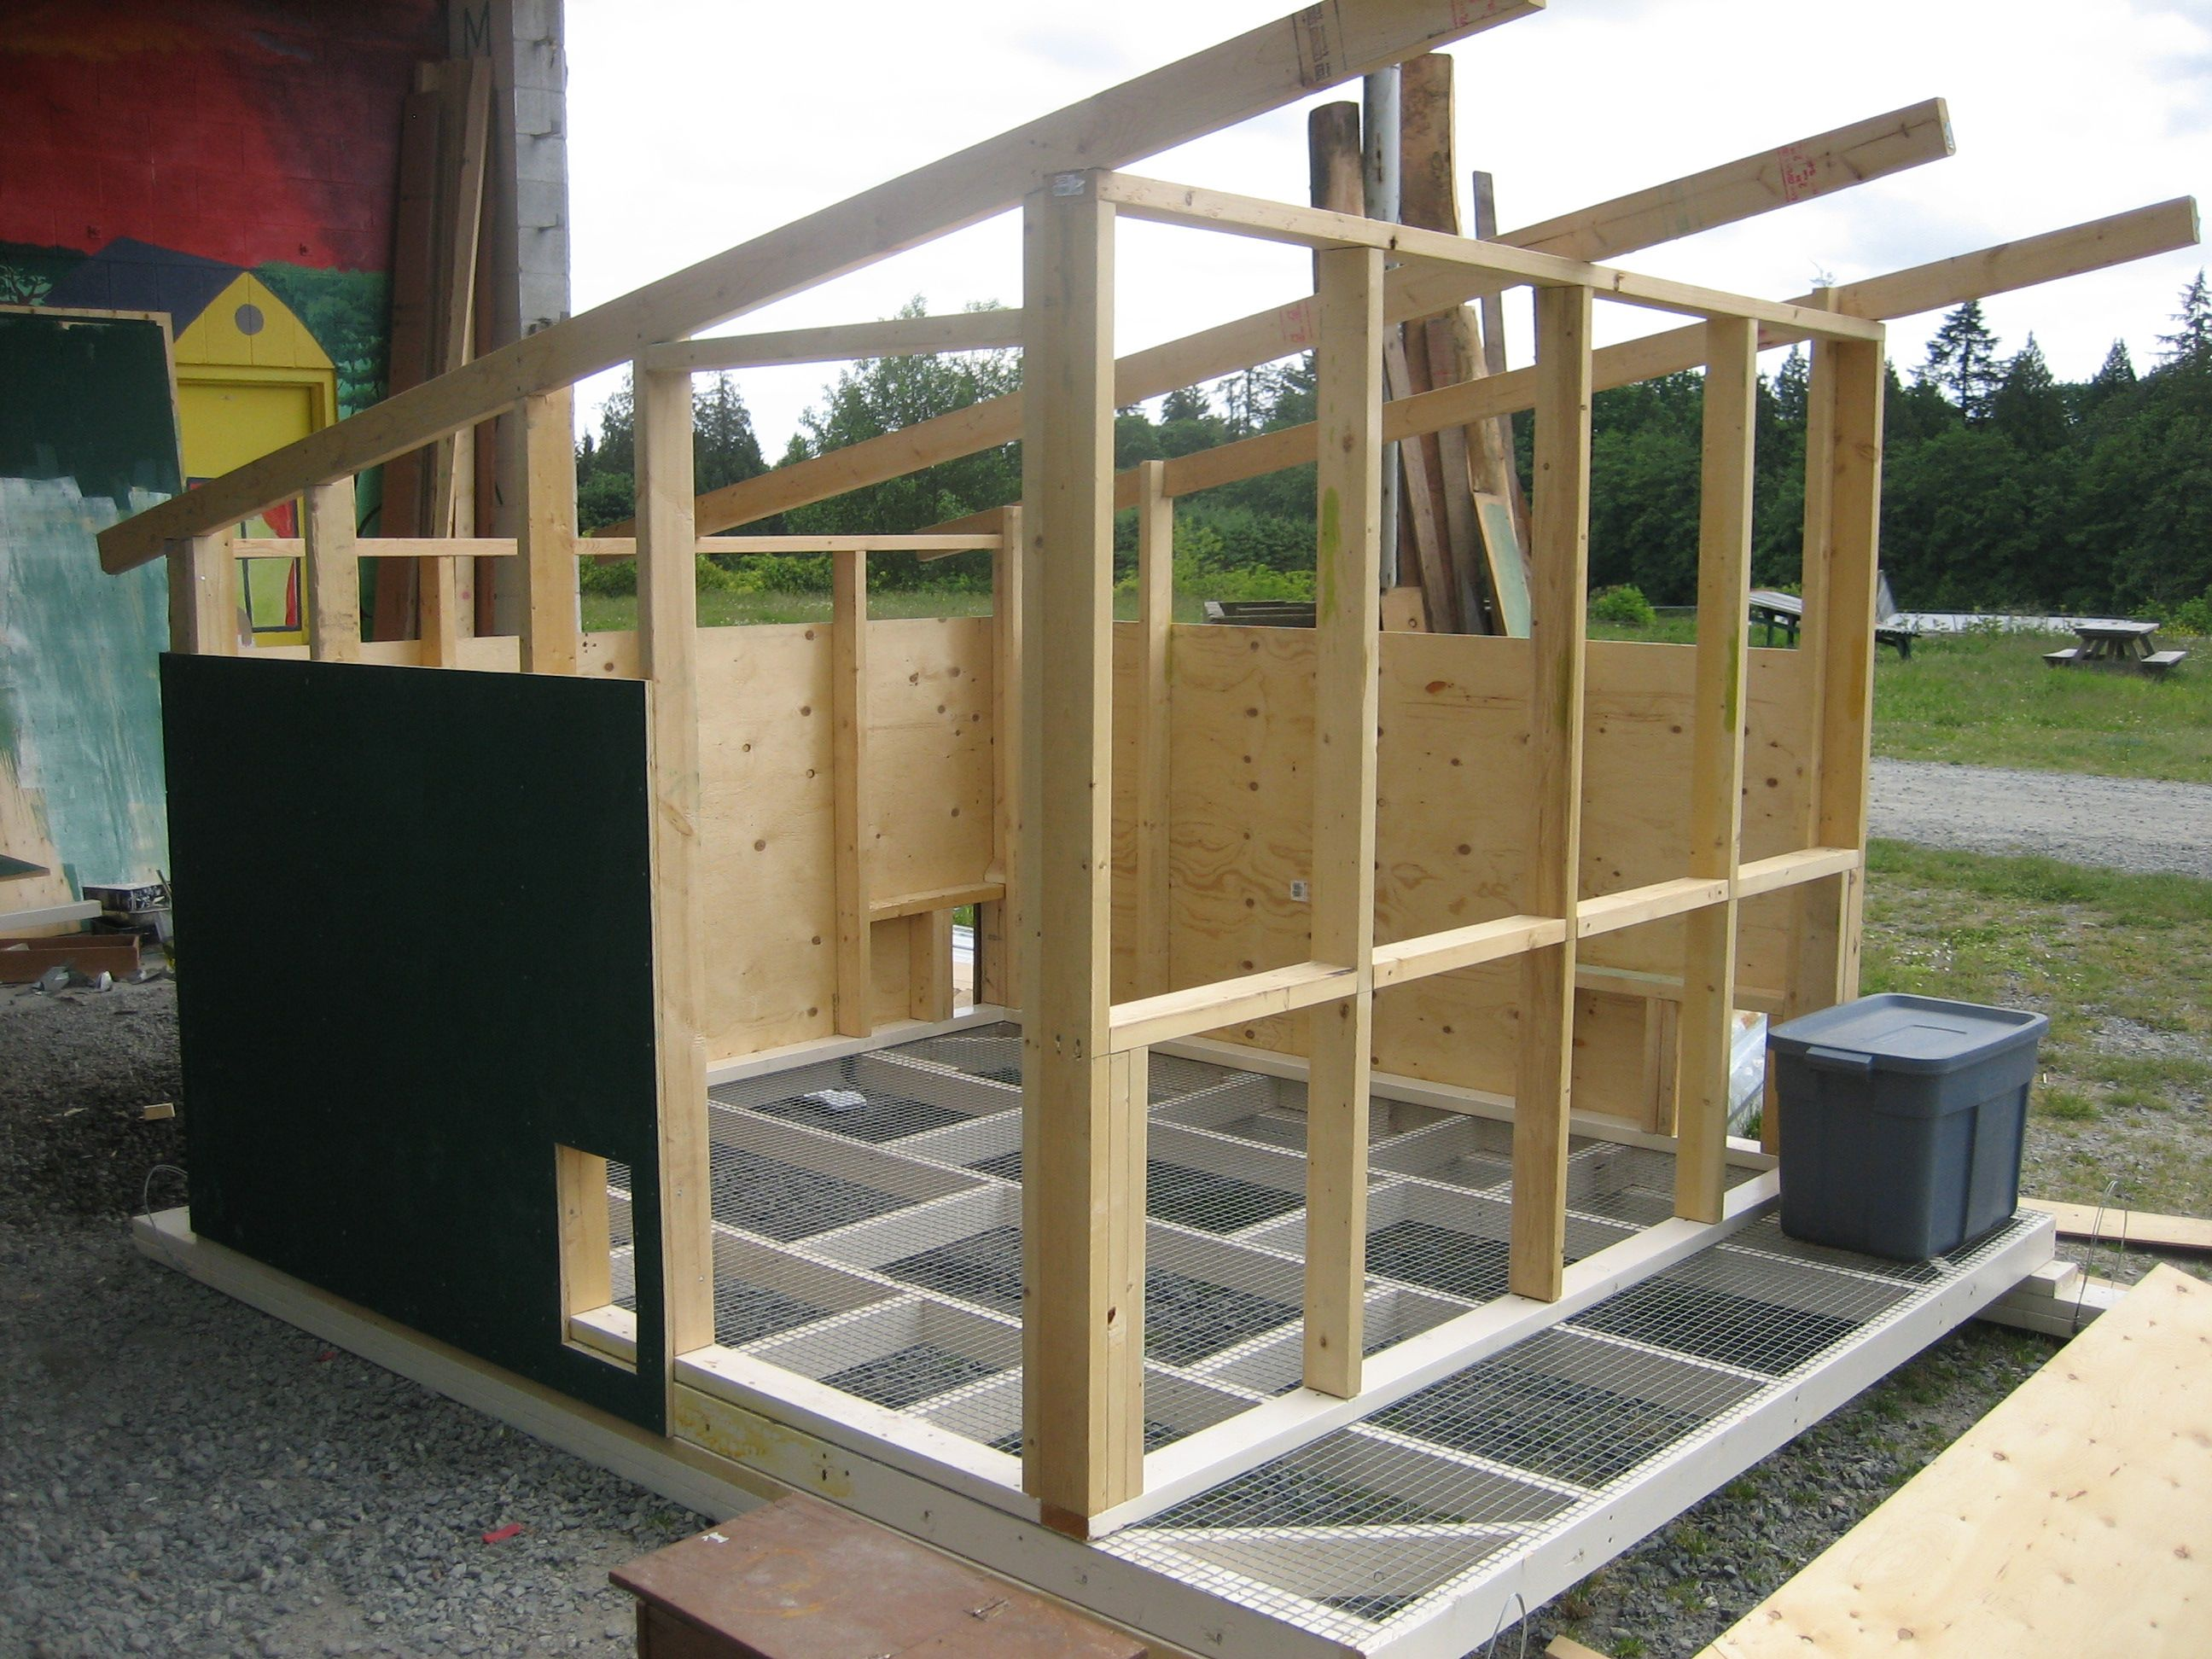 Chicken House construction plans for a chicken coop | chicken houses, coops and